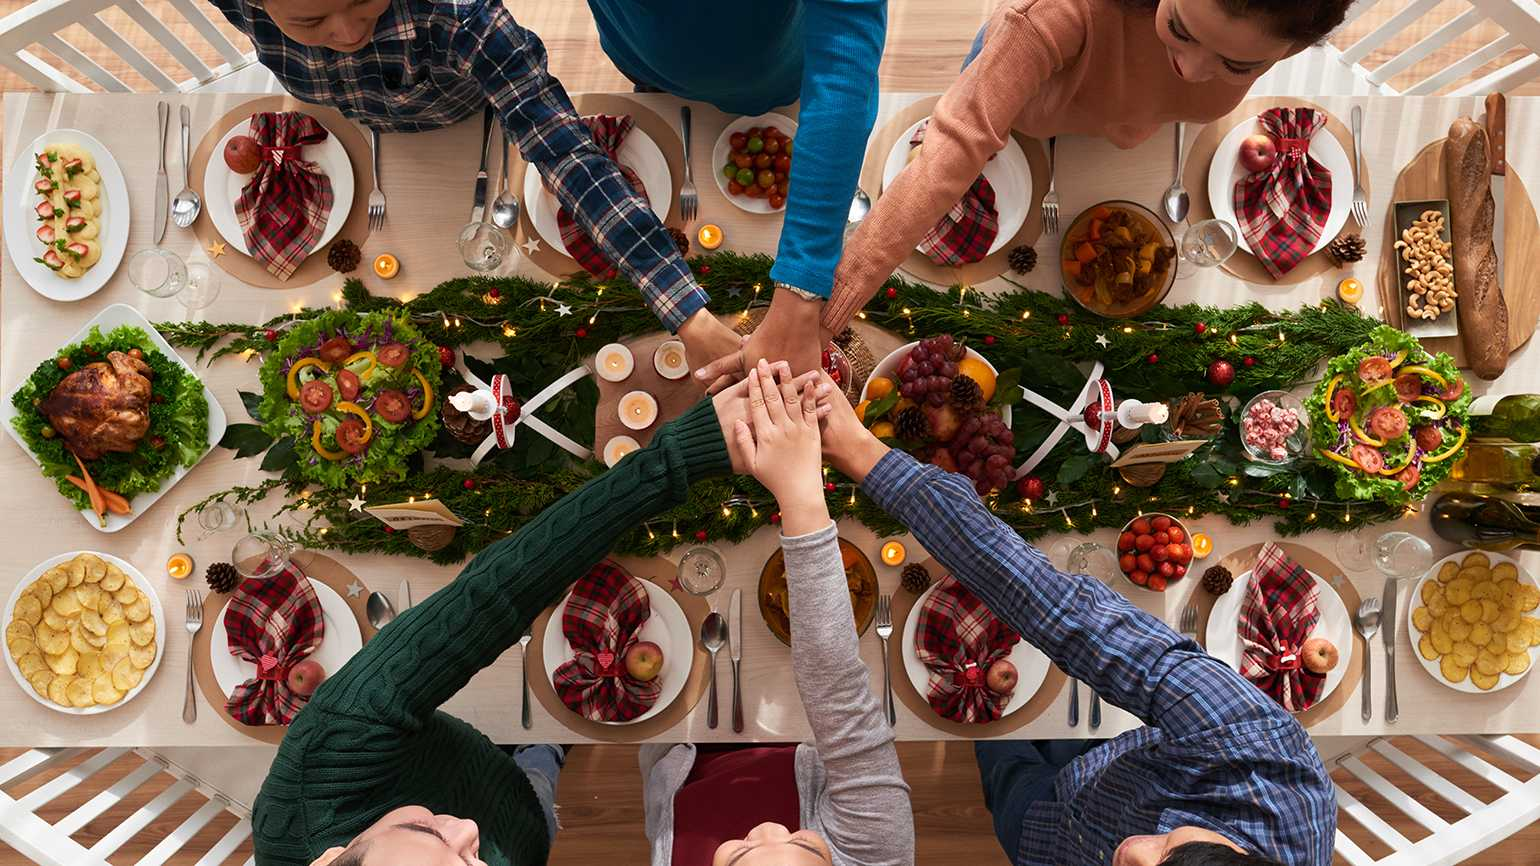 A family claps hands over a Christmas dinner table